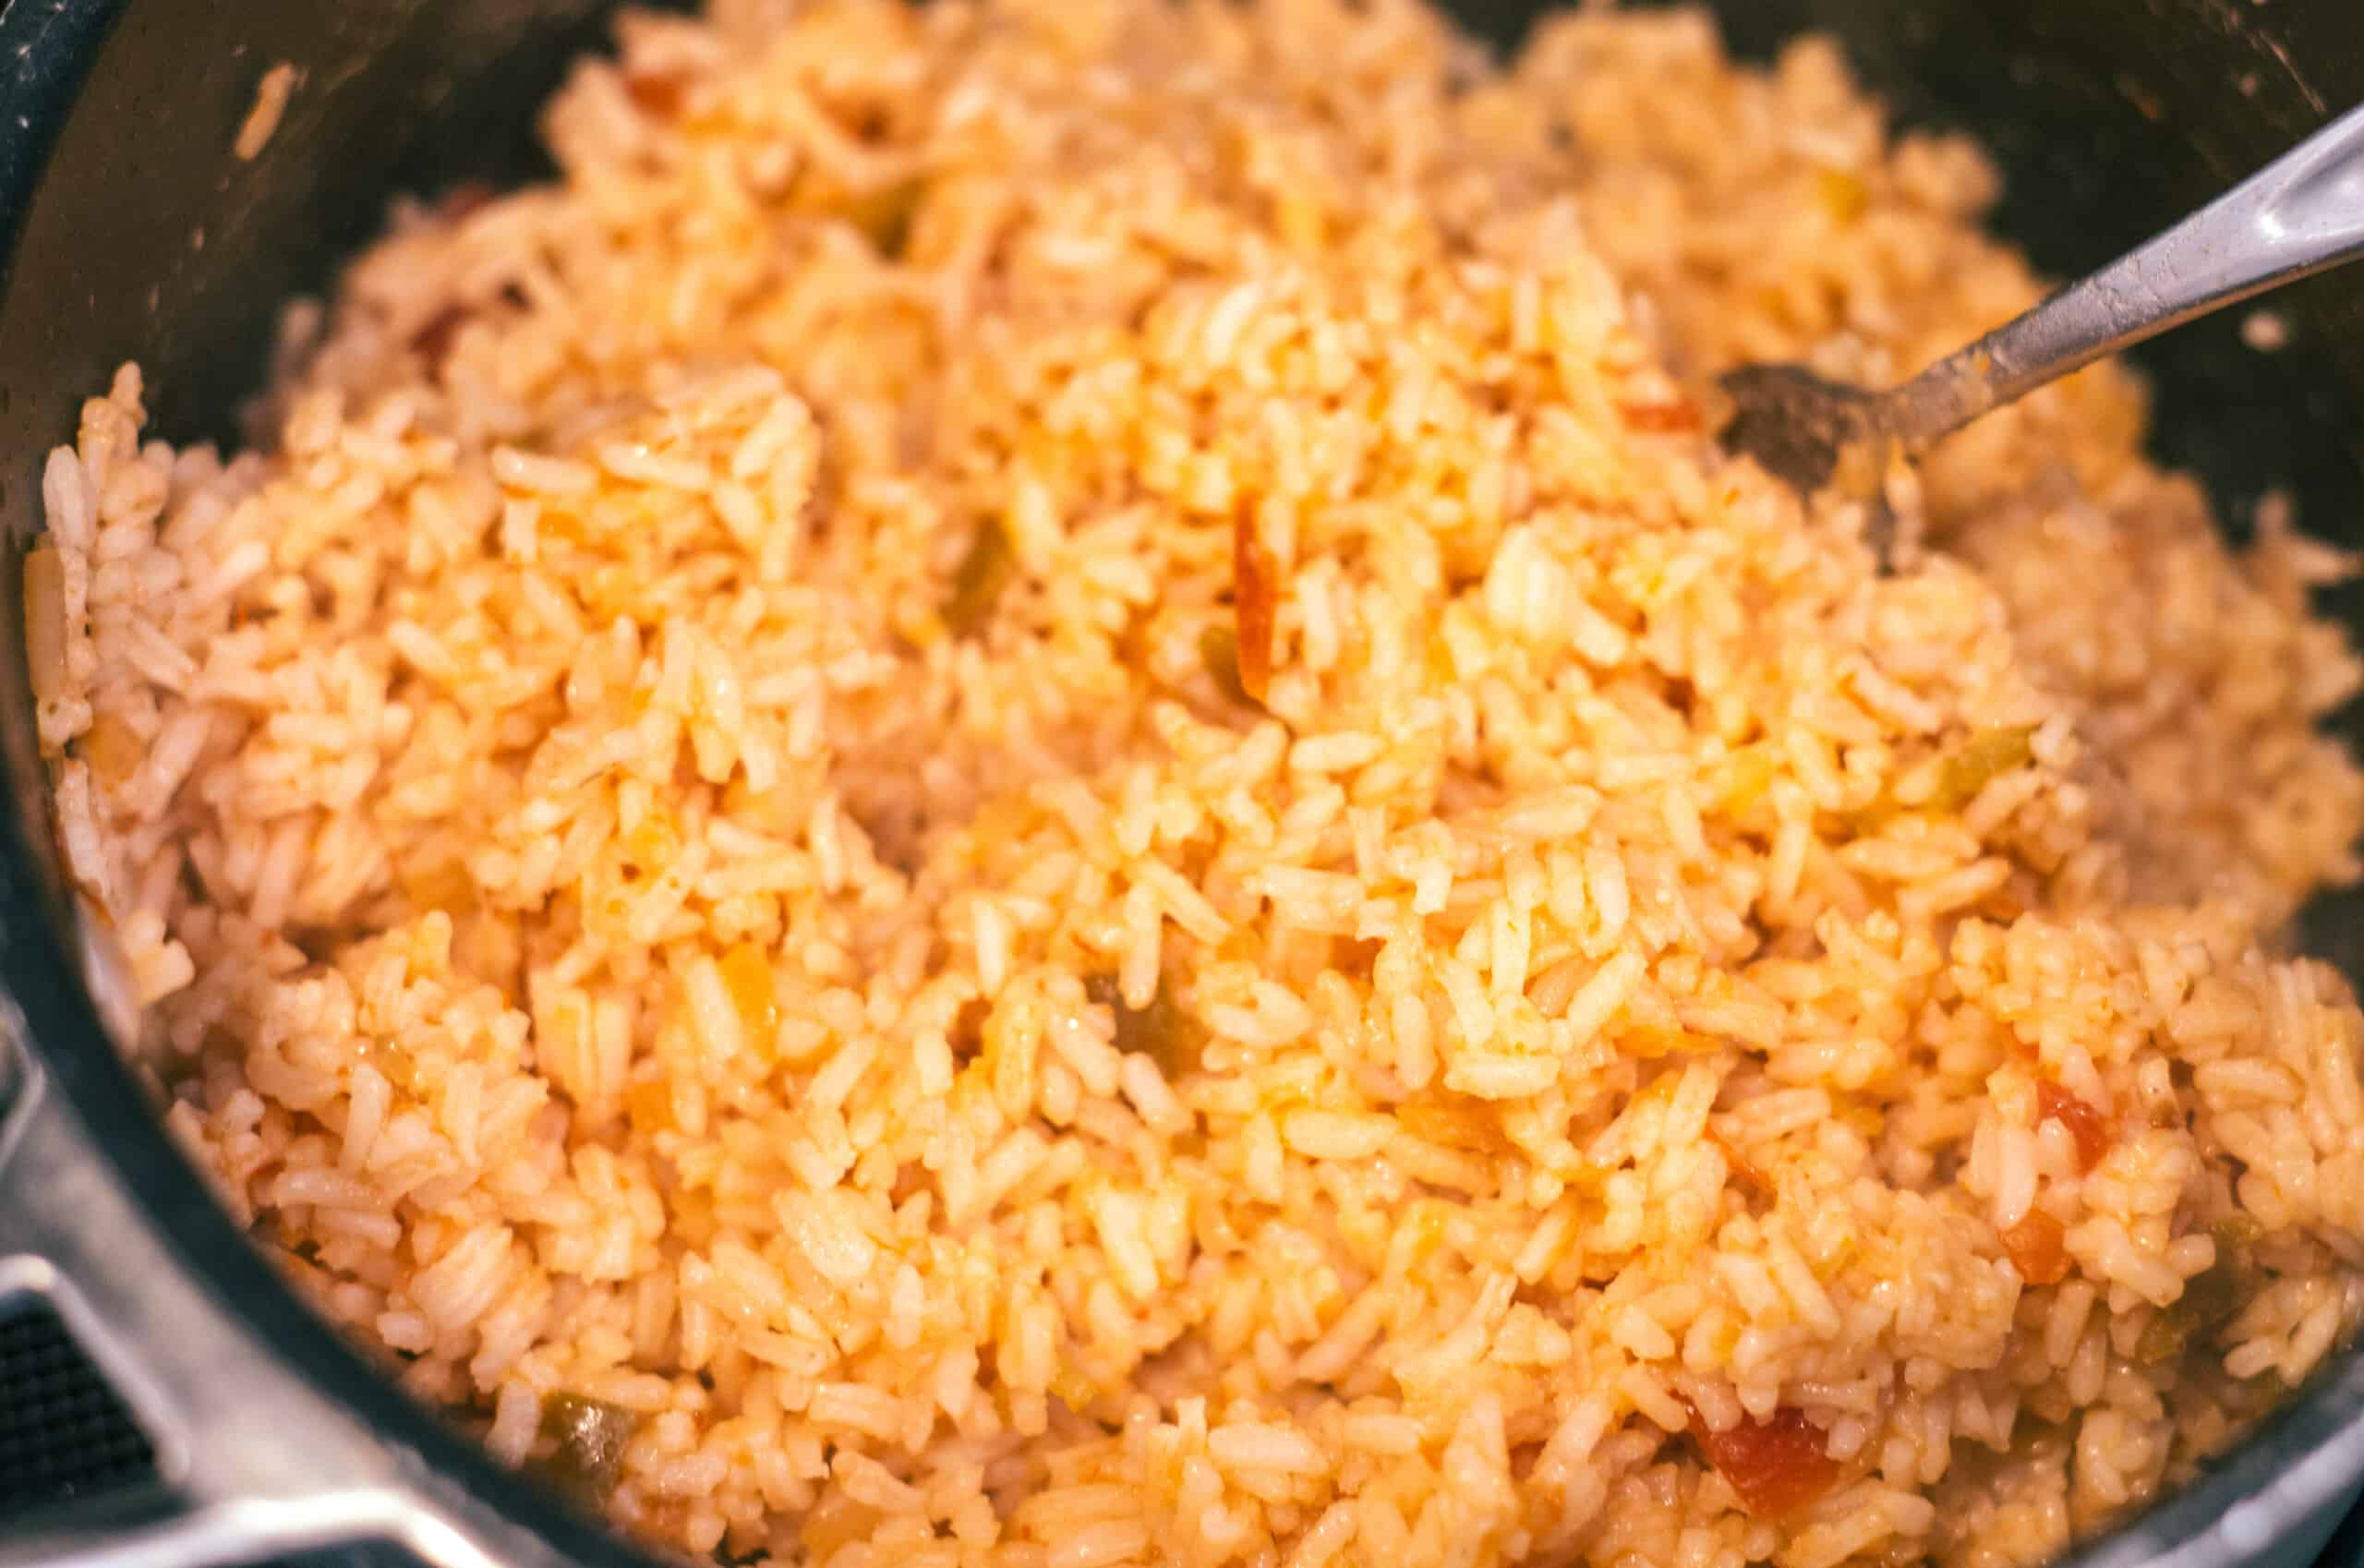 White Rice seasoned with salsa for flavor!